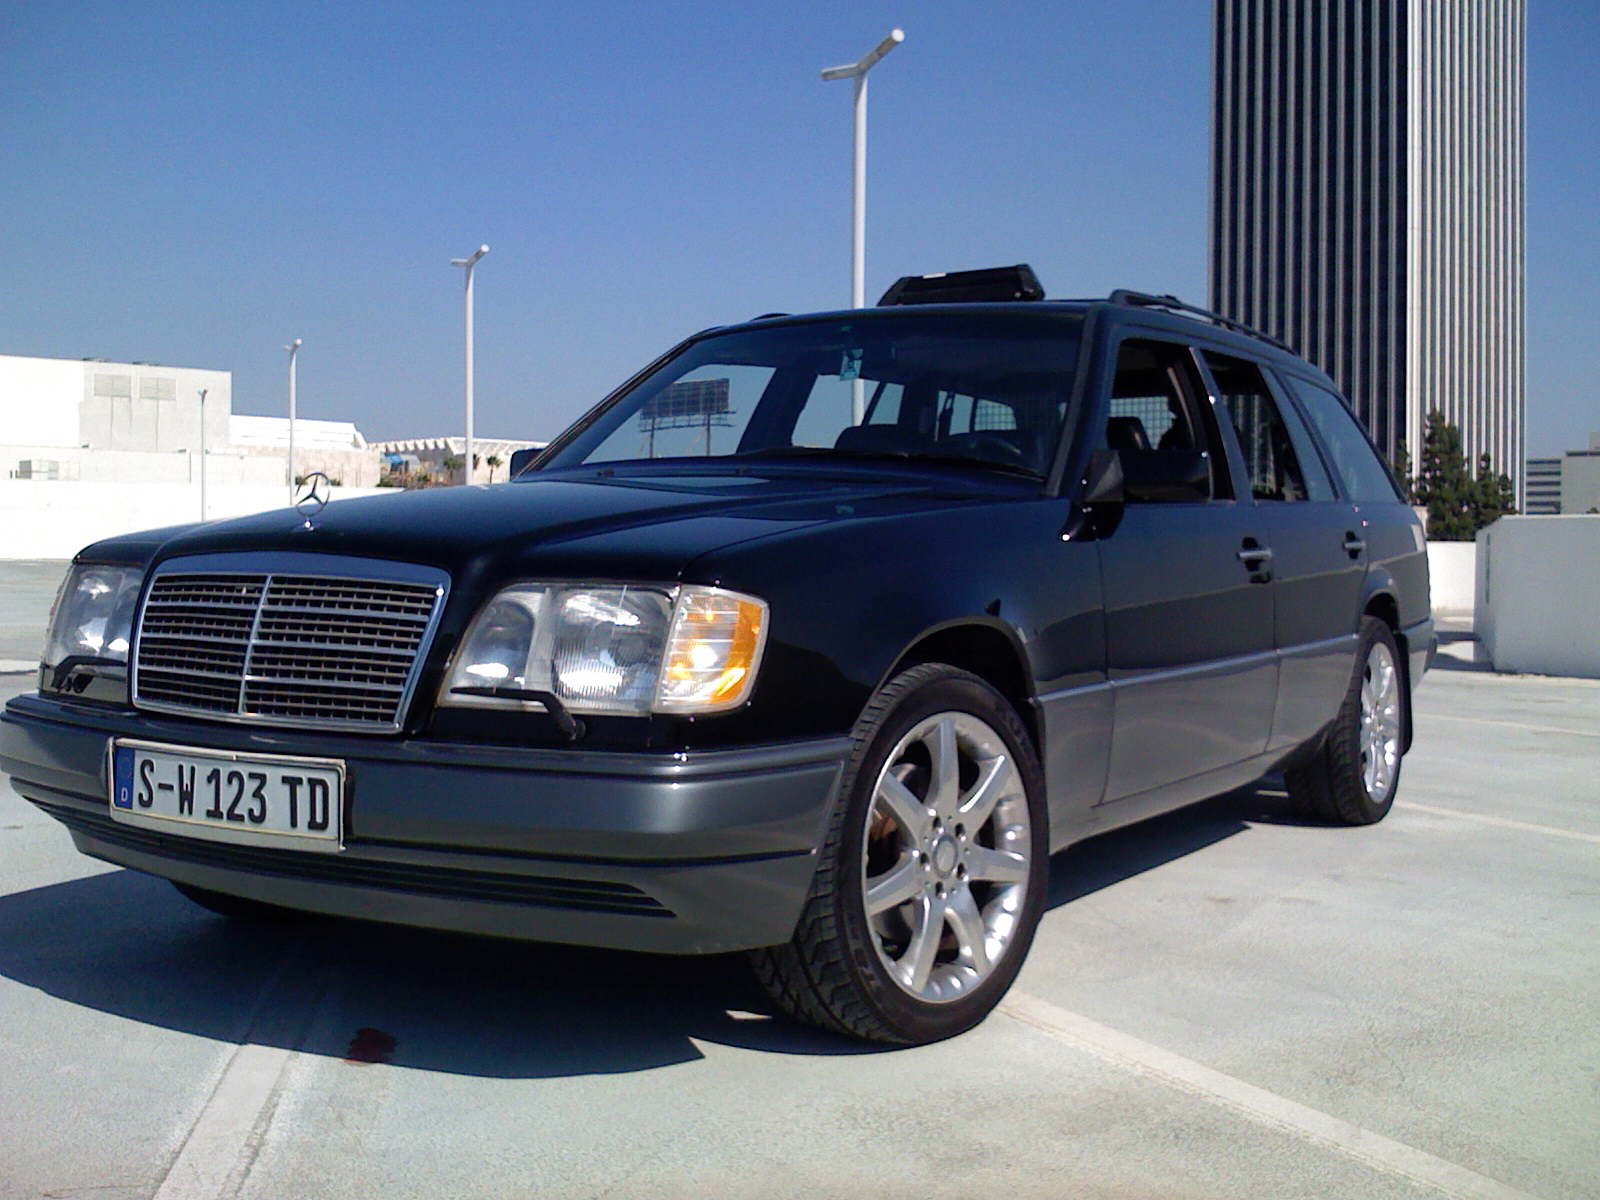 1987 mercedes 300e with File 1995 Mercedes W124 Wagon on 2237226 besides 2105713 W126 Color Paint Codes Best Site further 275315 Sistema Electrico Mercedes 190 additionally Watch likewise Gear Ratios.